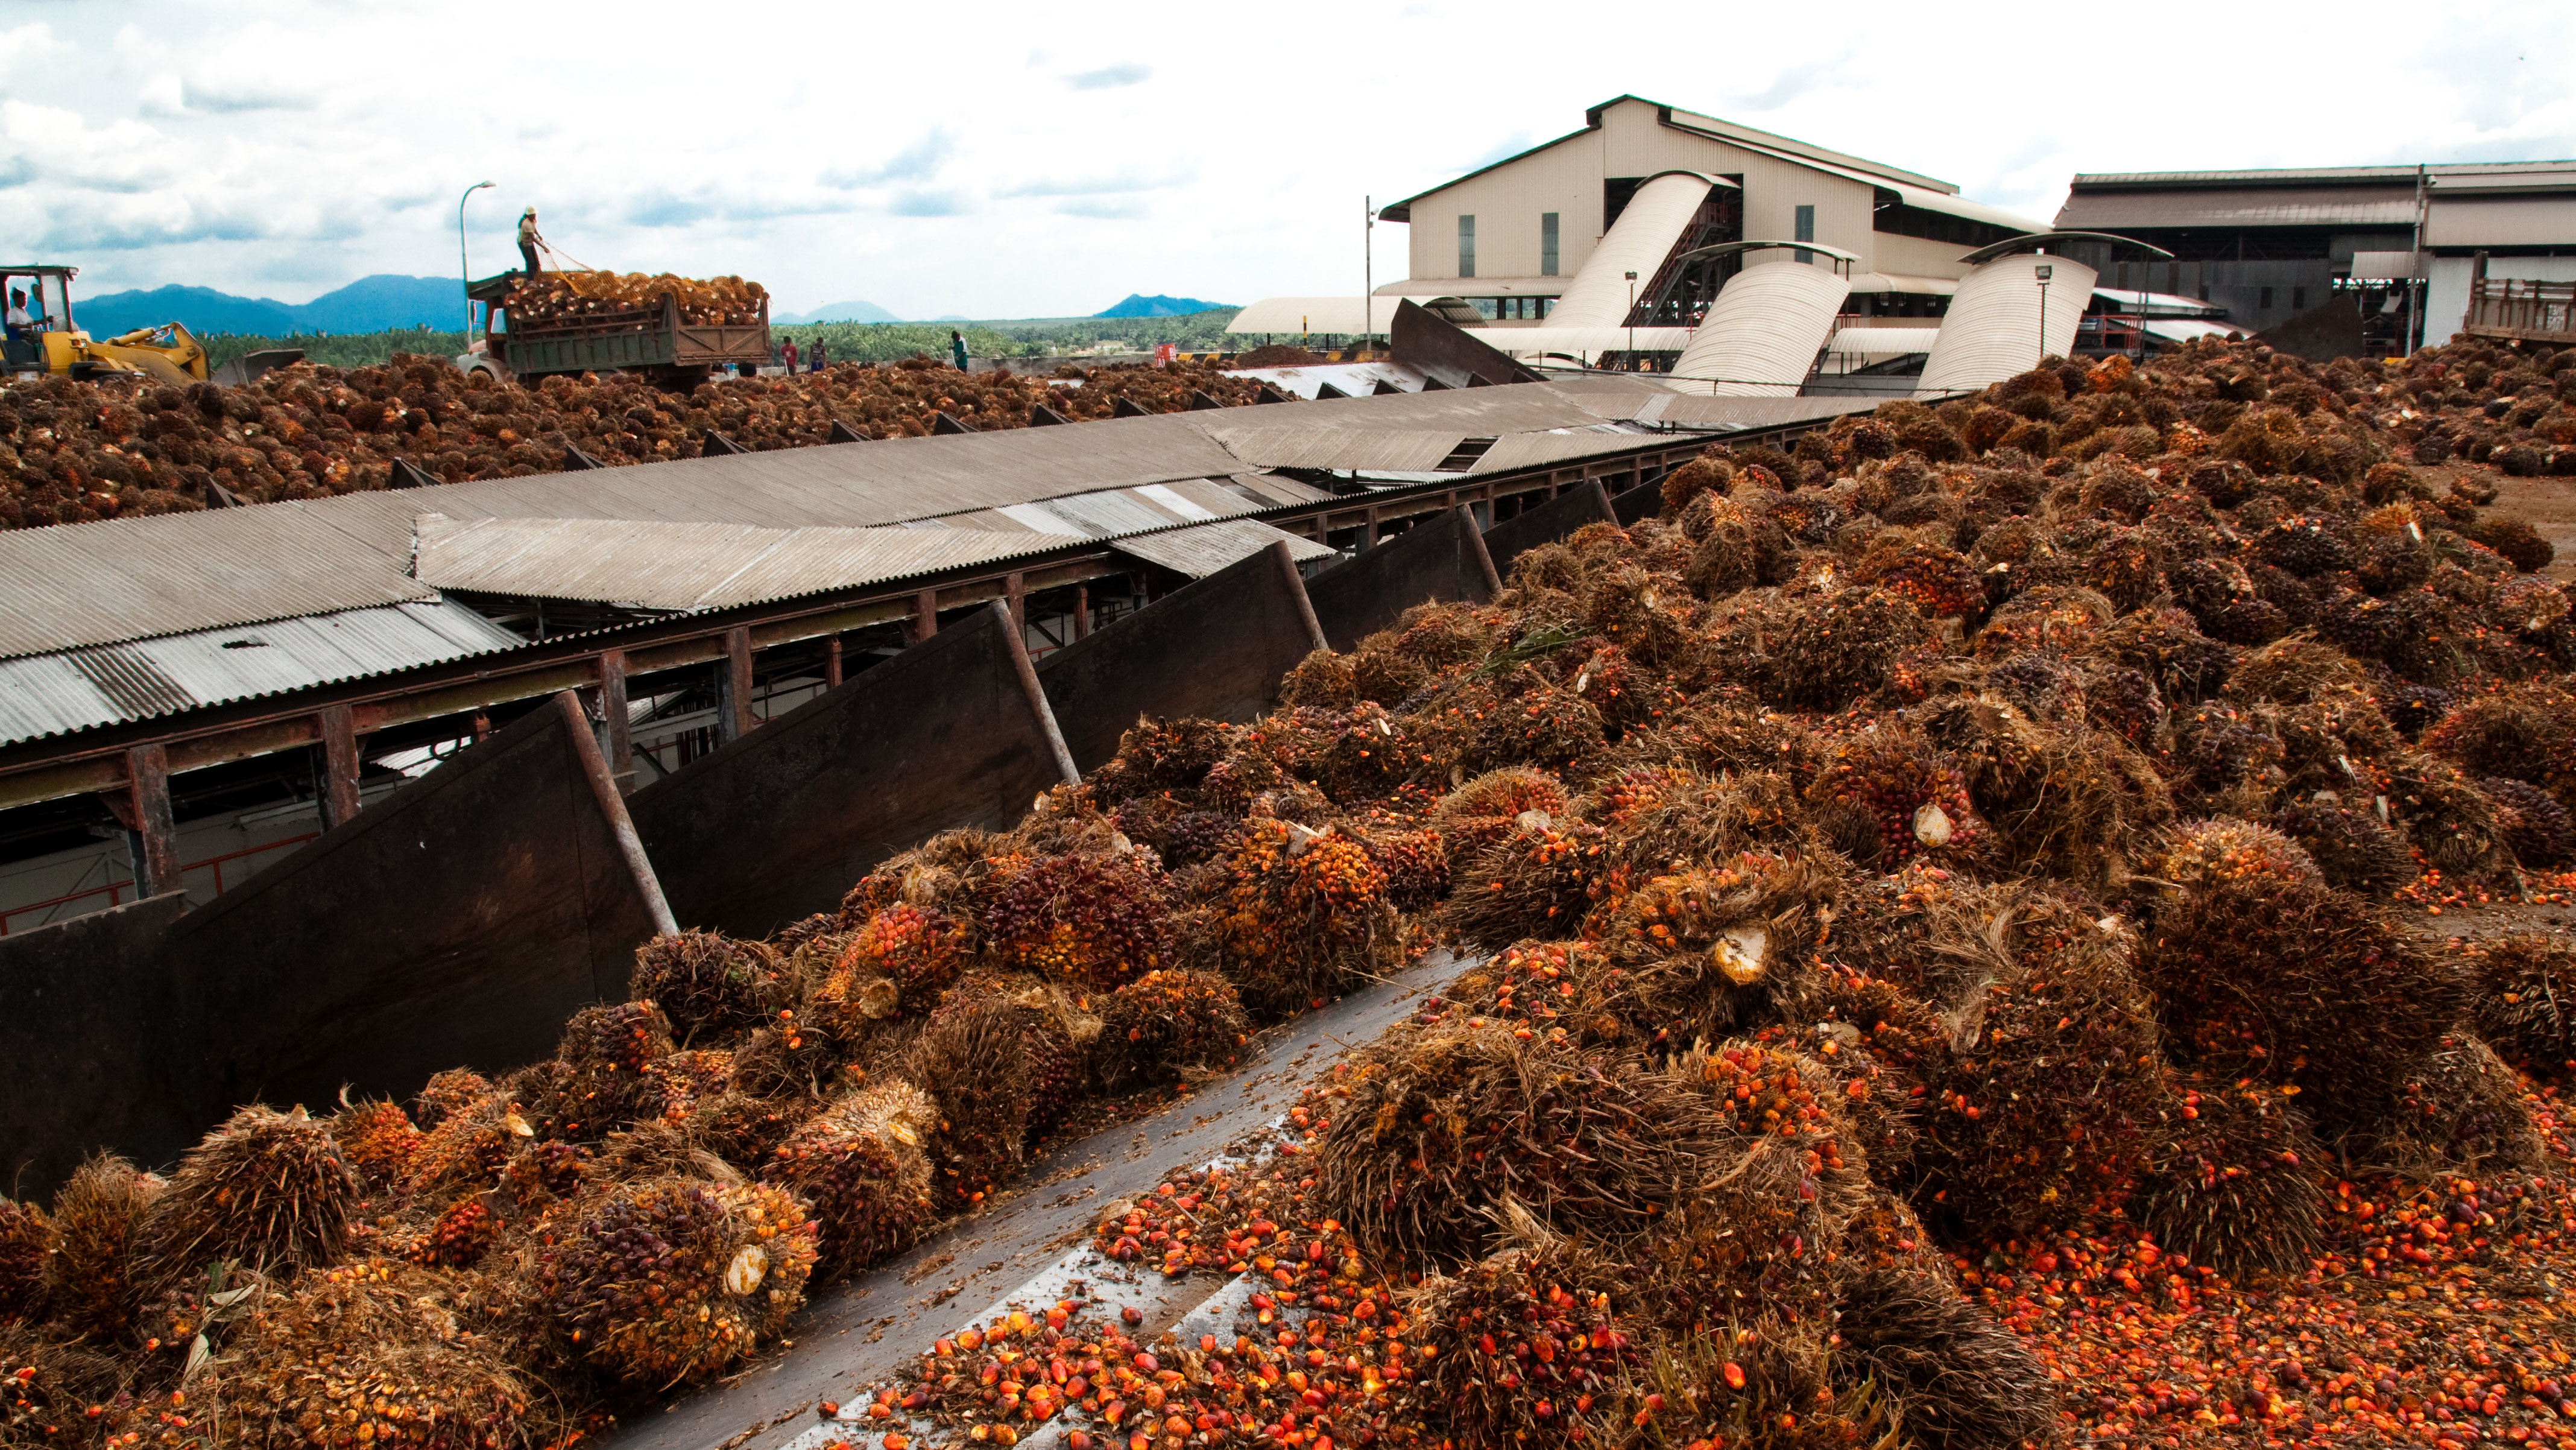 Palm processing production plant with fruit in foreground